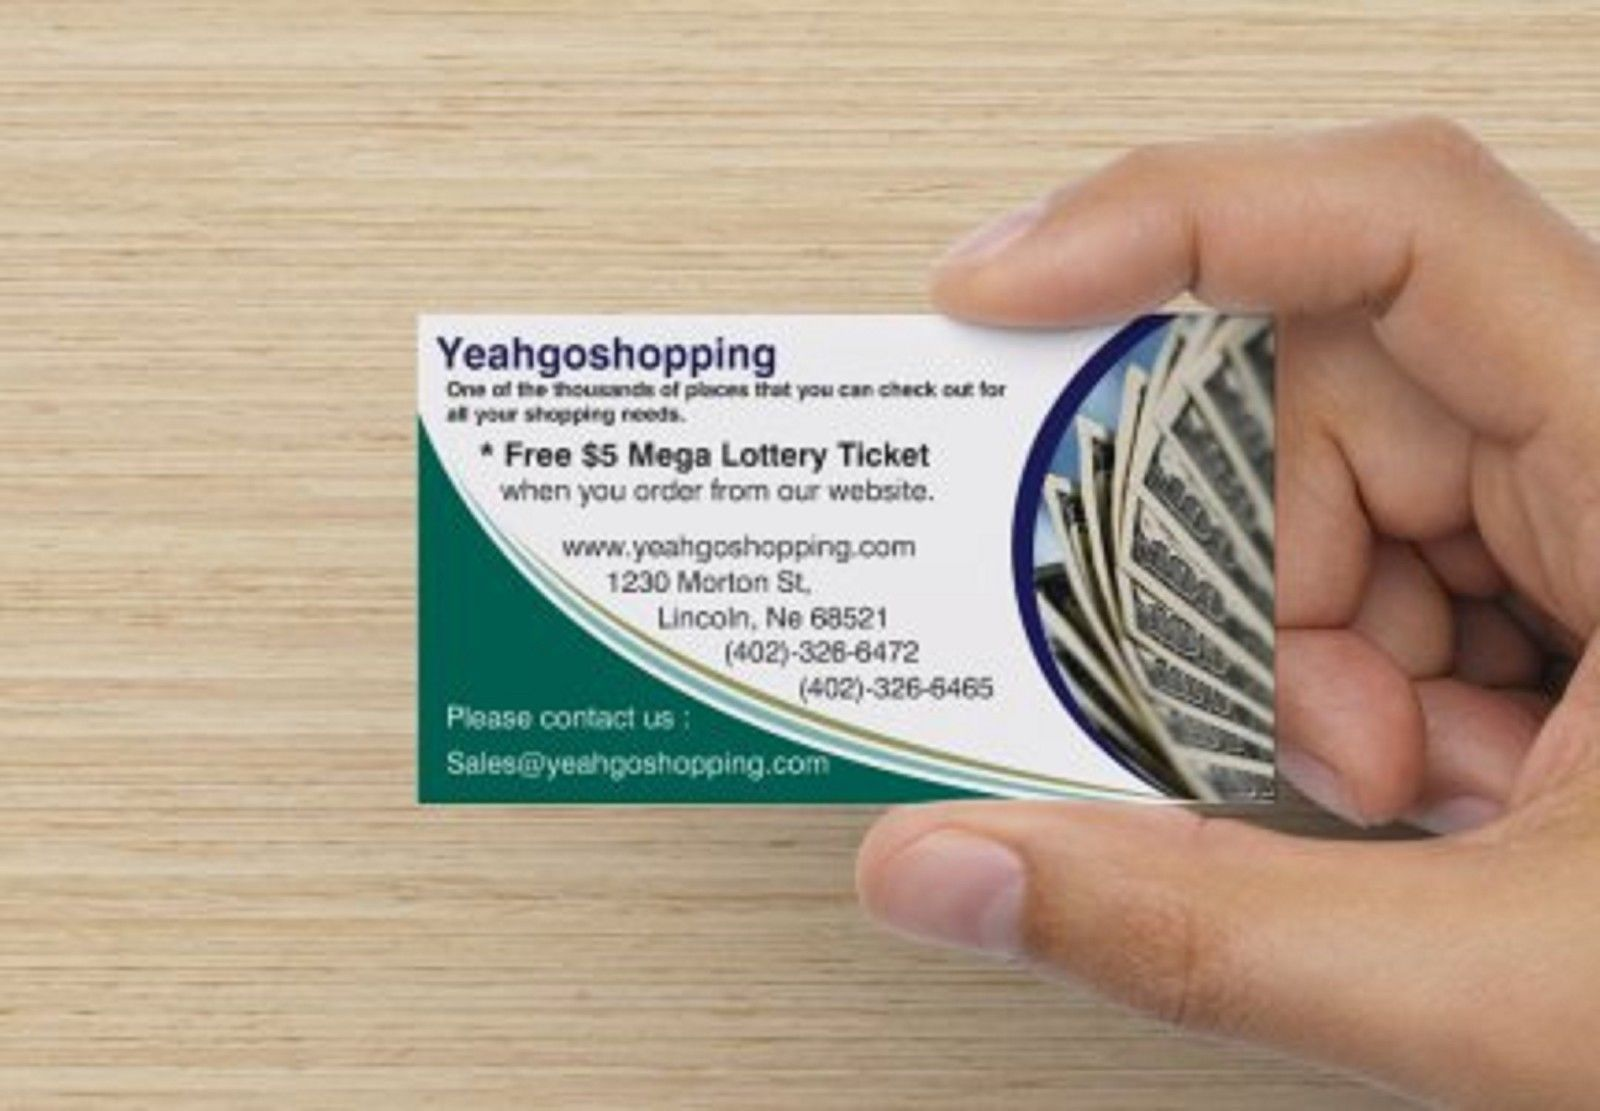 Put your Banner on yeahgoshopping.com (365 days) - More visitors to your site...